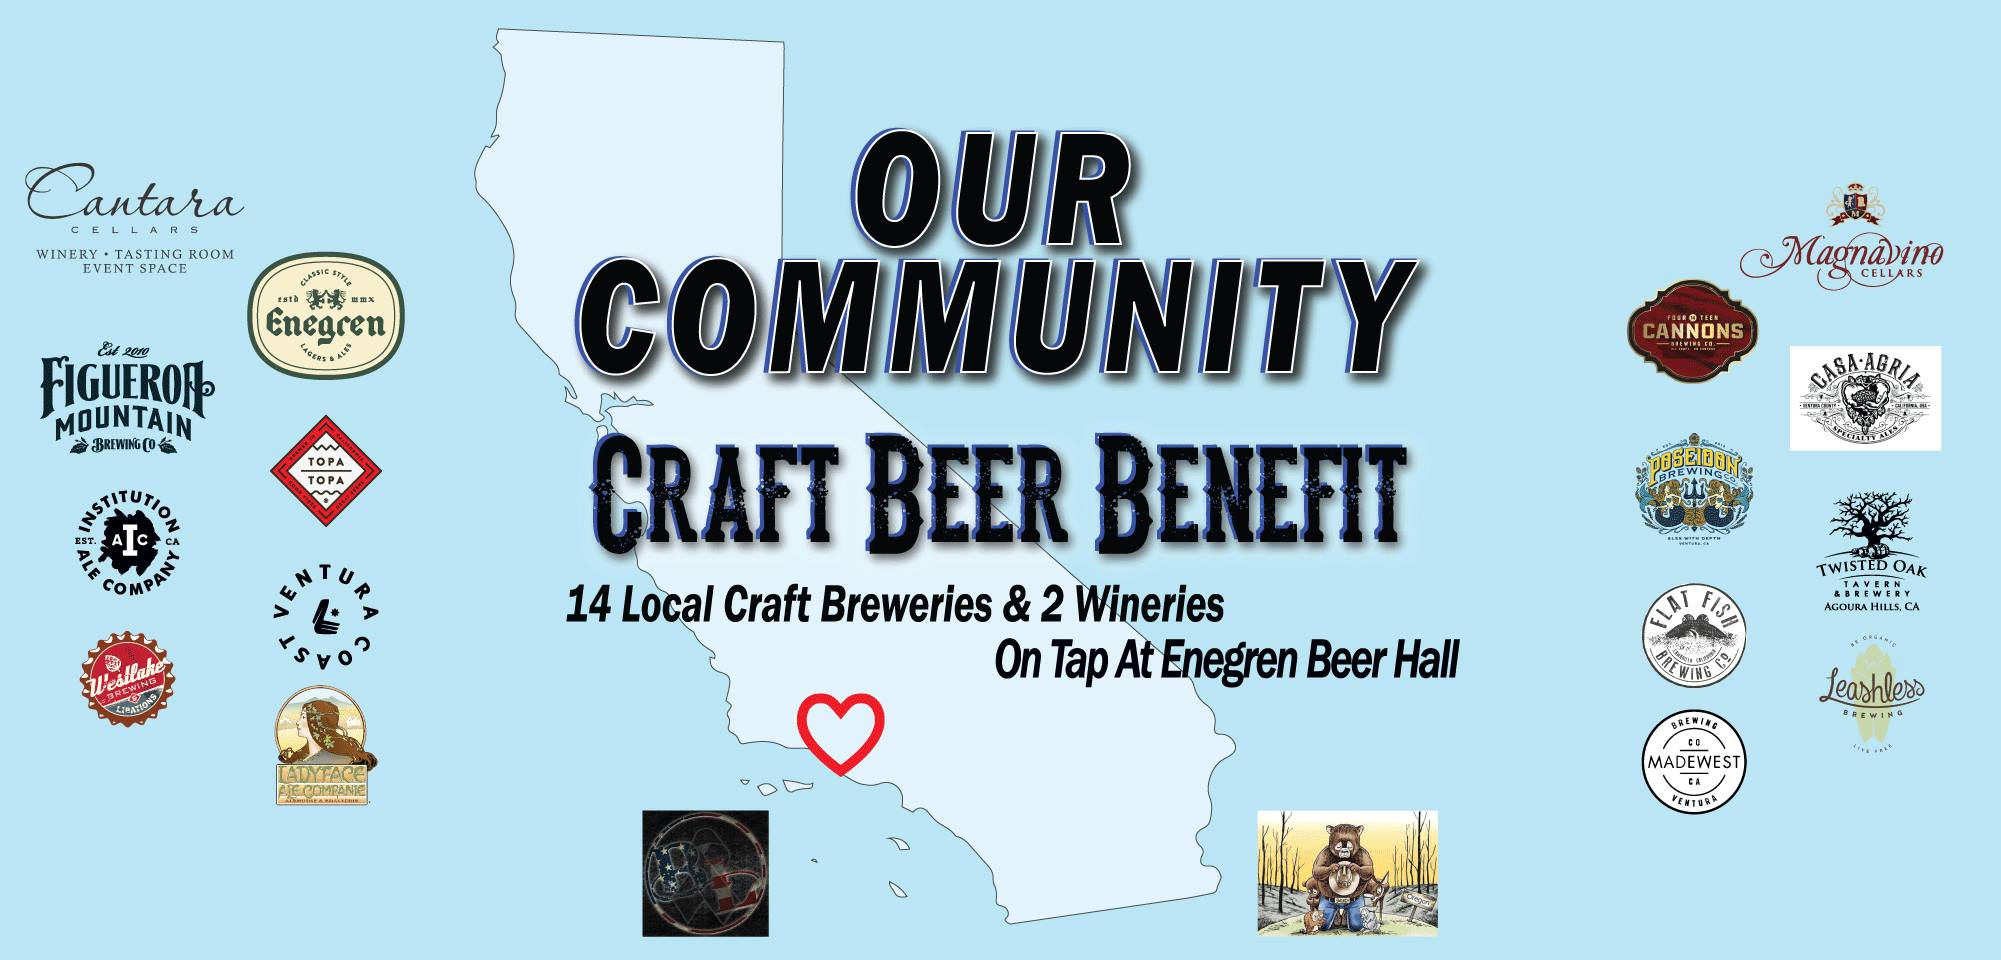 Our Community Craft Beer And Wine Benefit